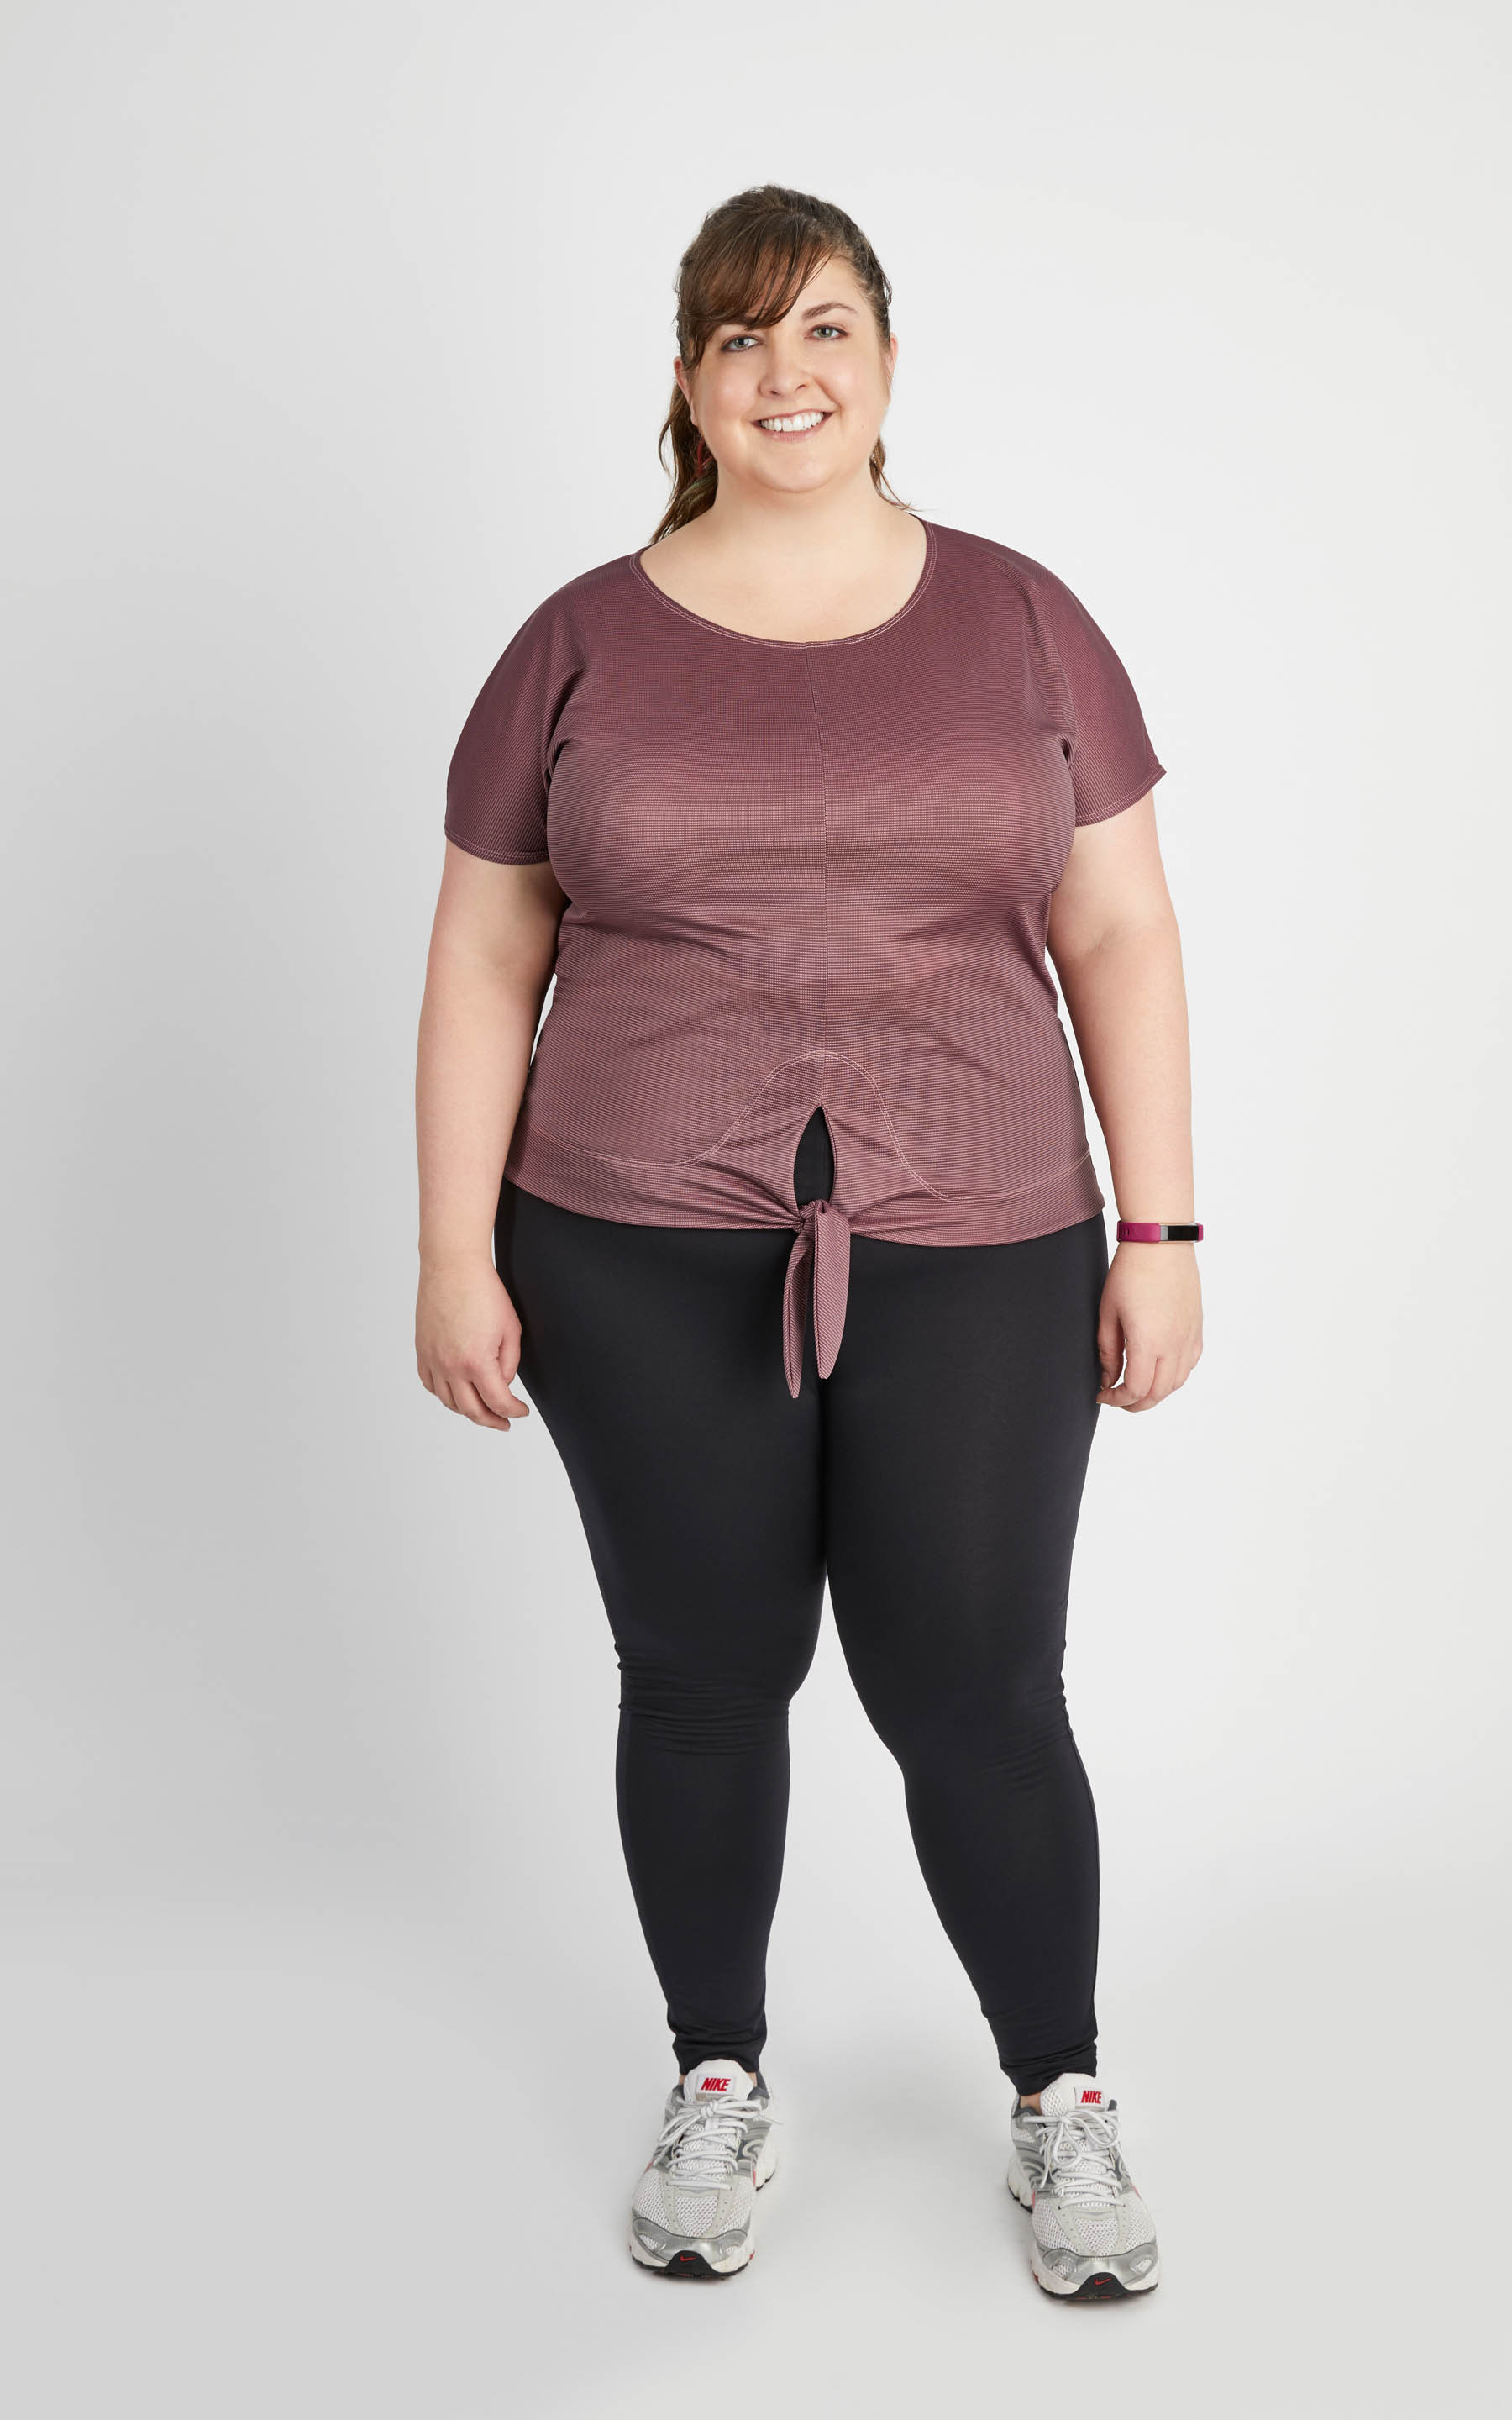 plus size activewear sewing pattern